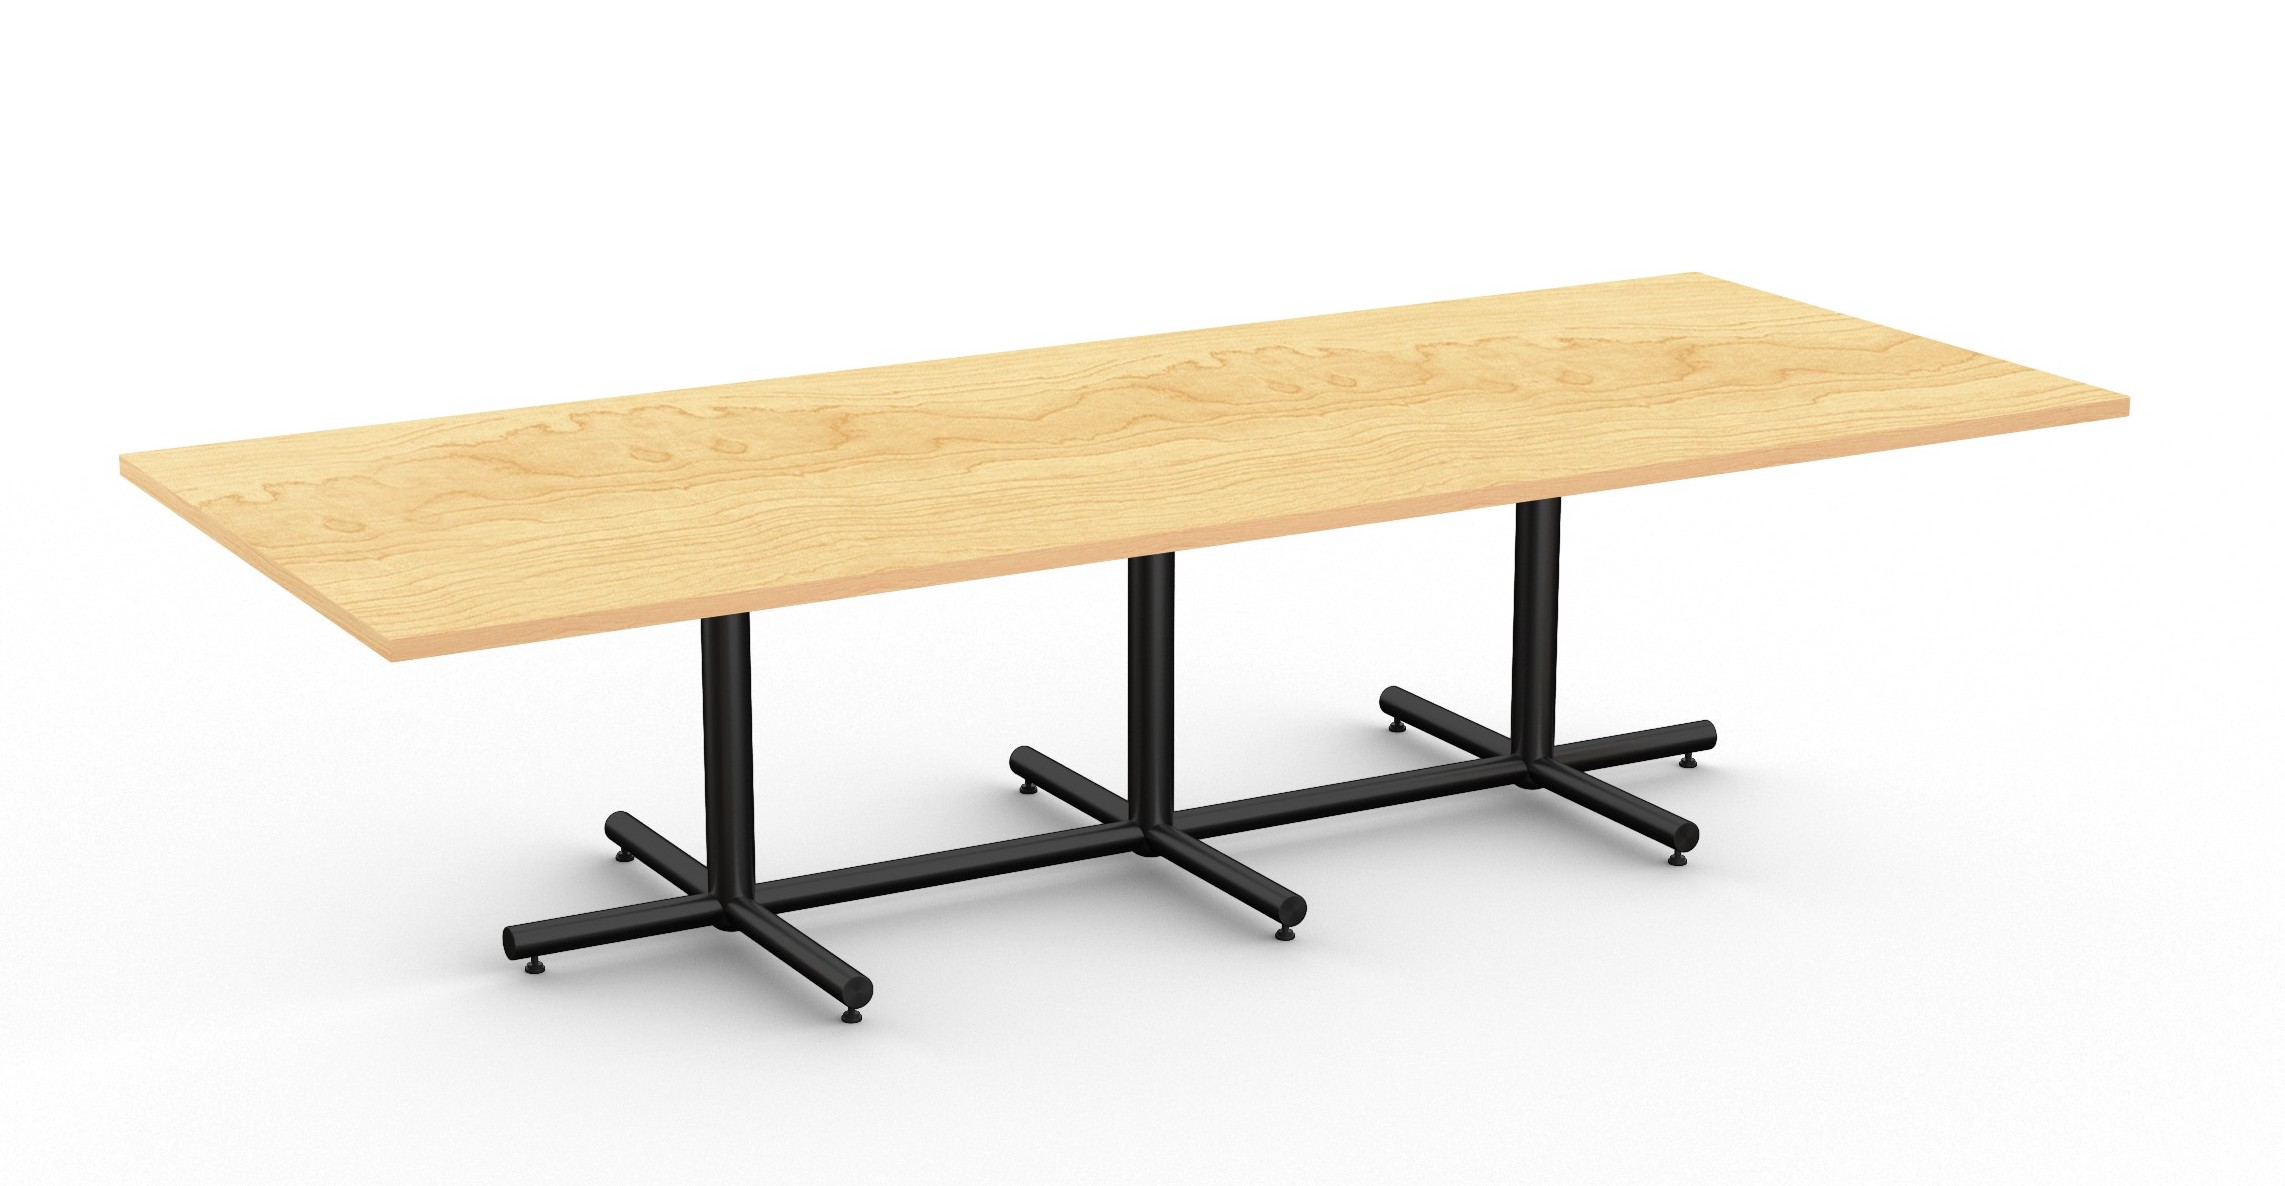 special-t connect large rectangular conference room table